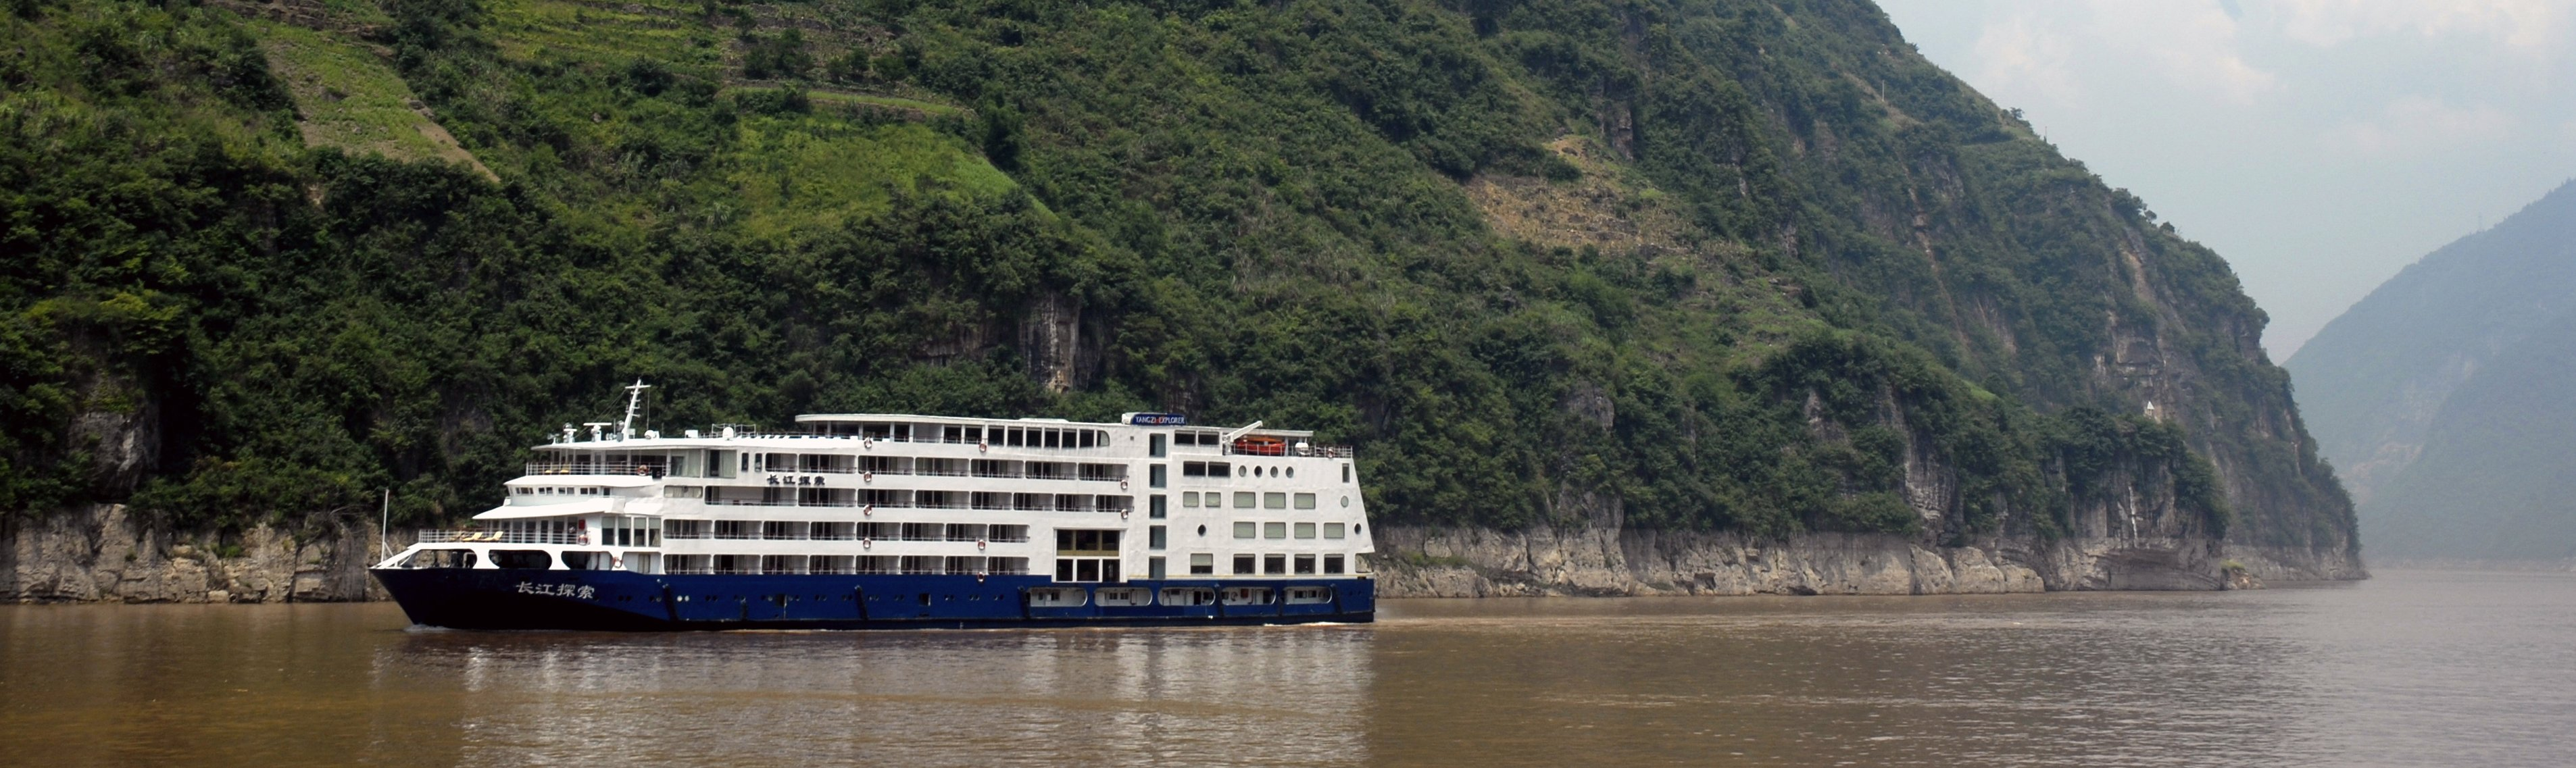 luxury-river-cruise-yangtze-china